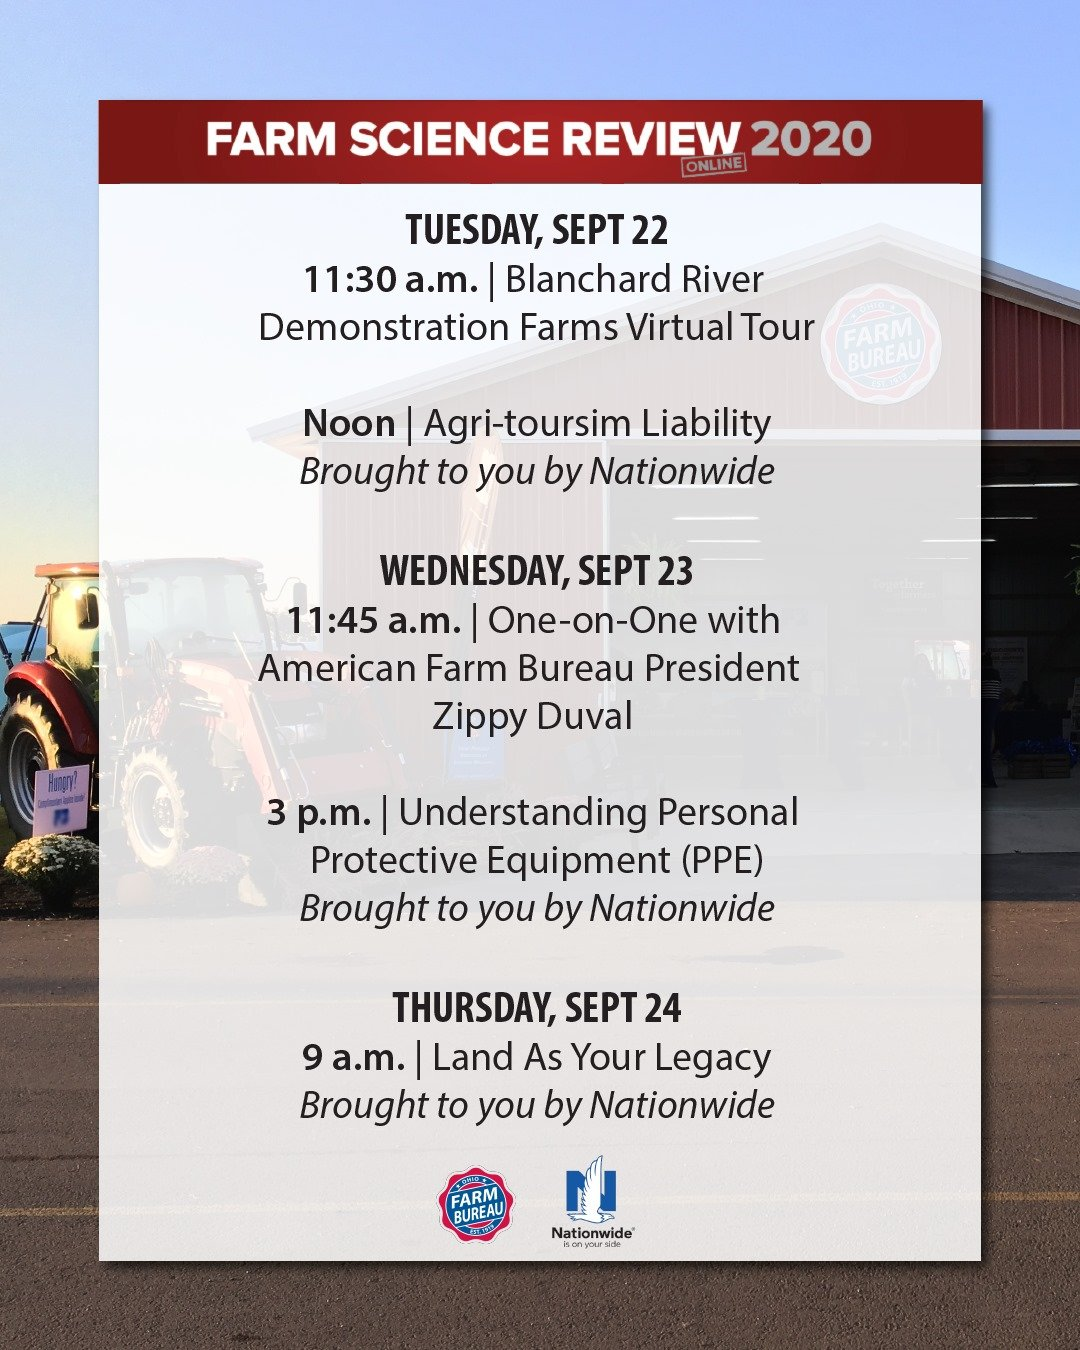 2020 Farm Science Review